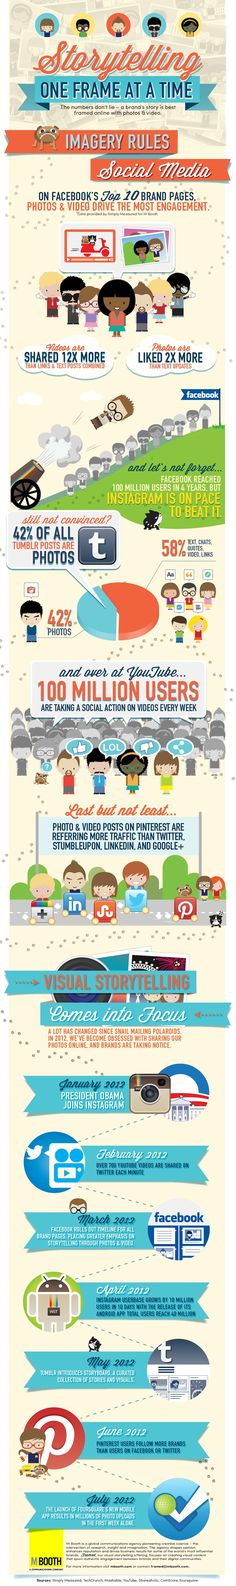 Why Photo And Video Shares Rule Social Media [INFOGRAPHIC]...the  importance of visual story telling.